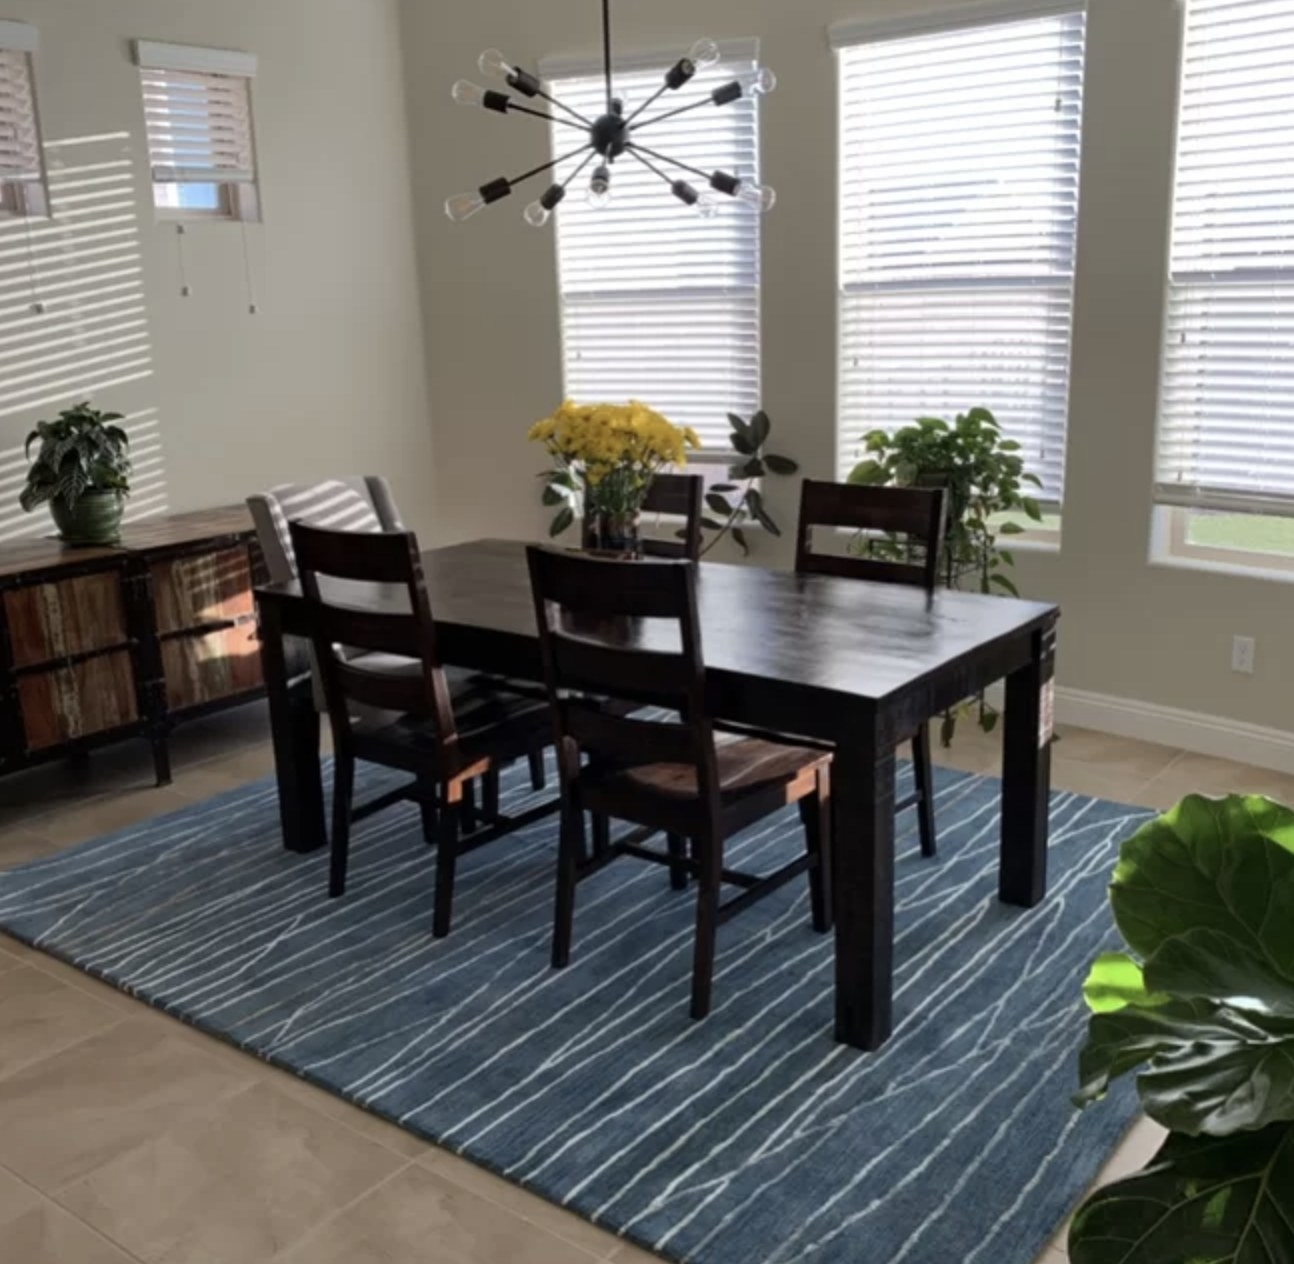 the rug in the darker blue color inside a reviewer's dining room